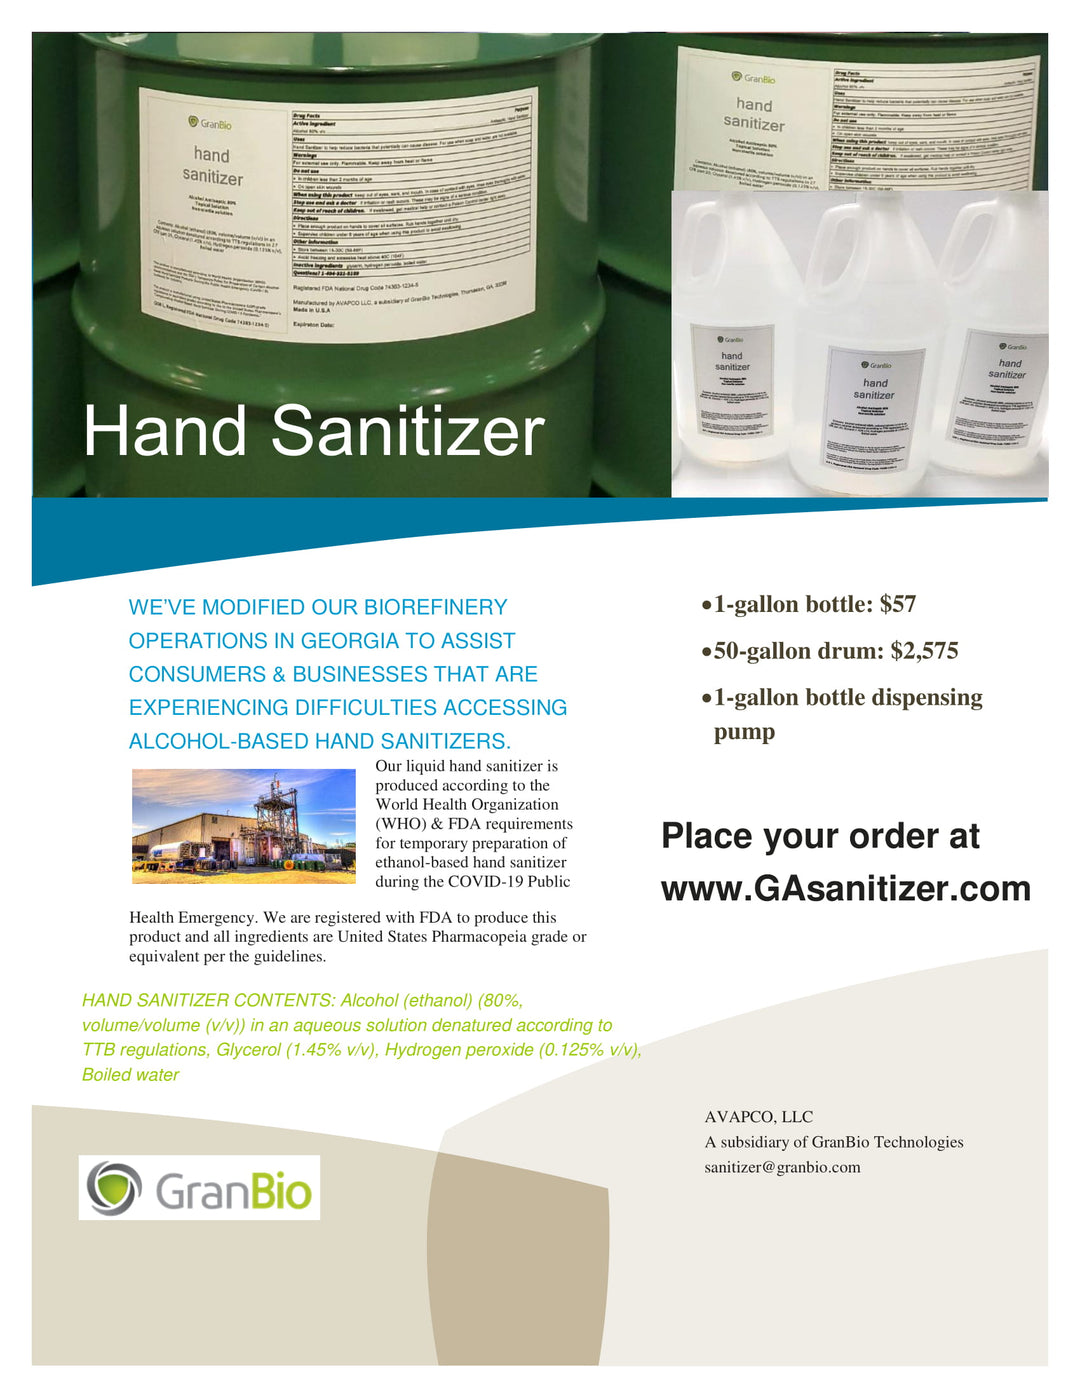 Hand Sanitizer Available in 1-gallon bottles and 50-gallons drum sizes in Georgia, USA